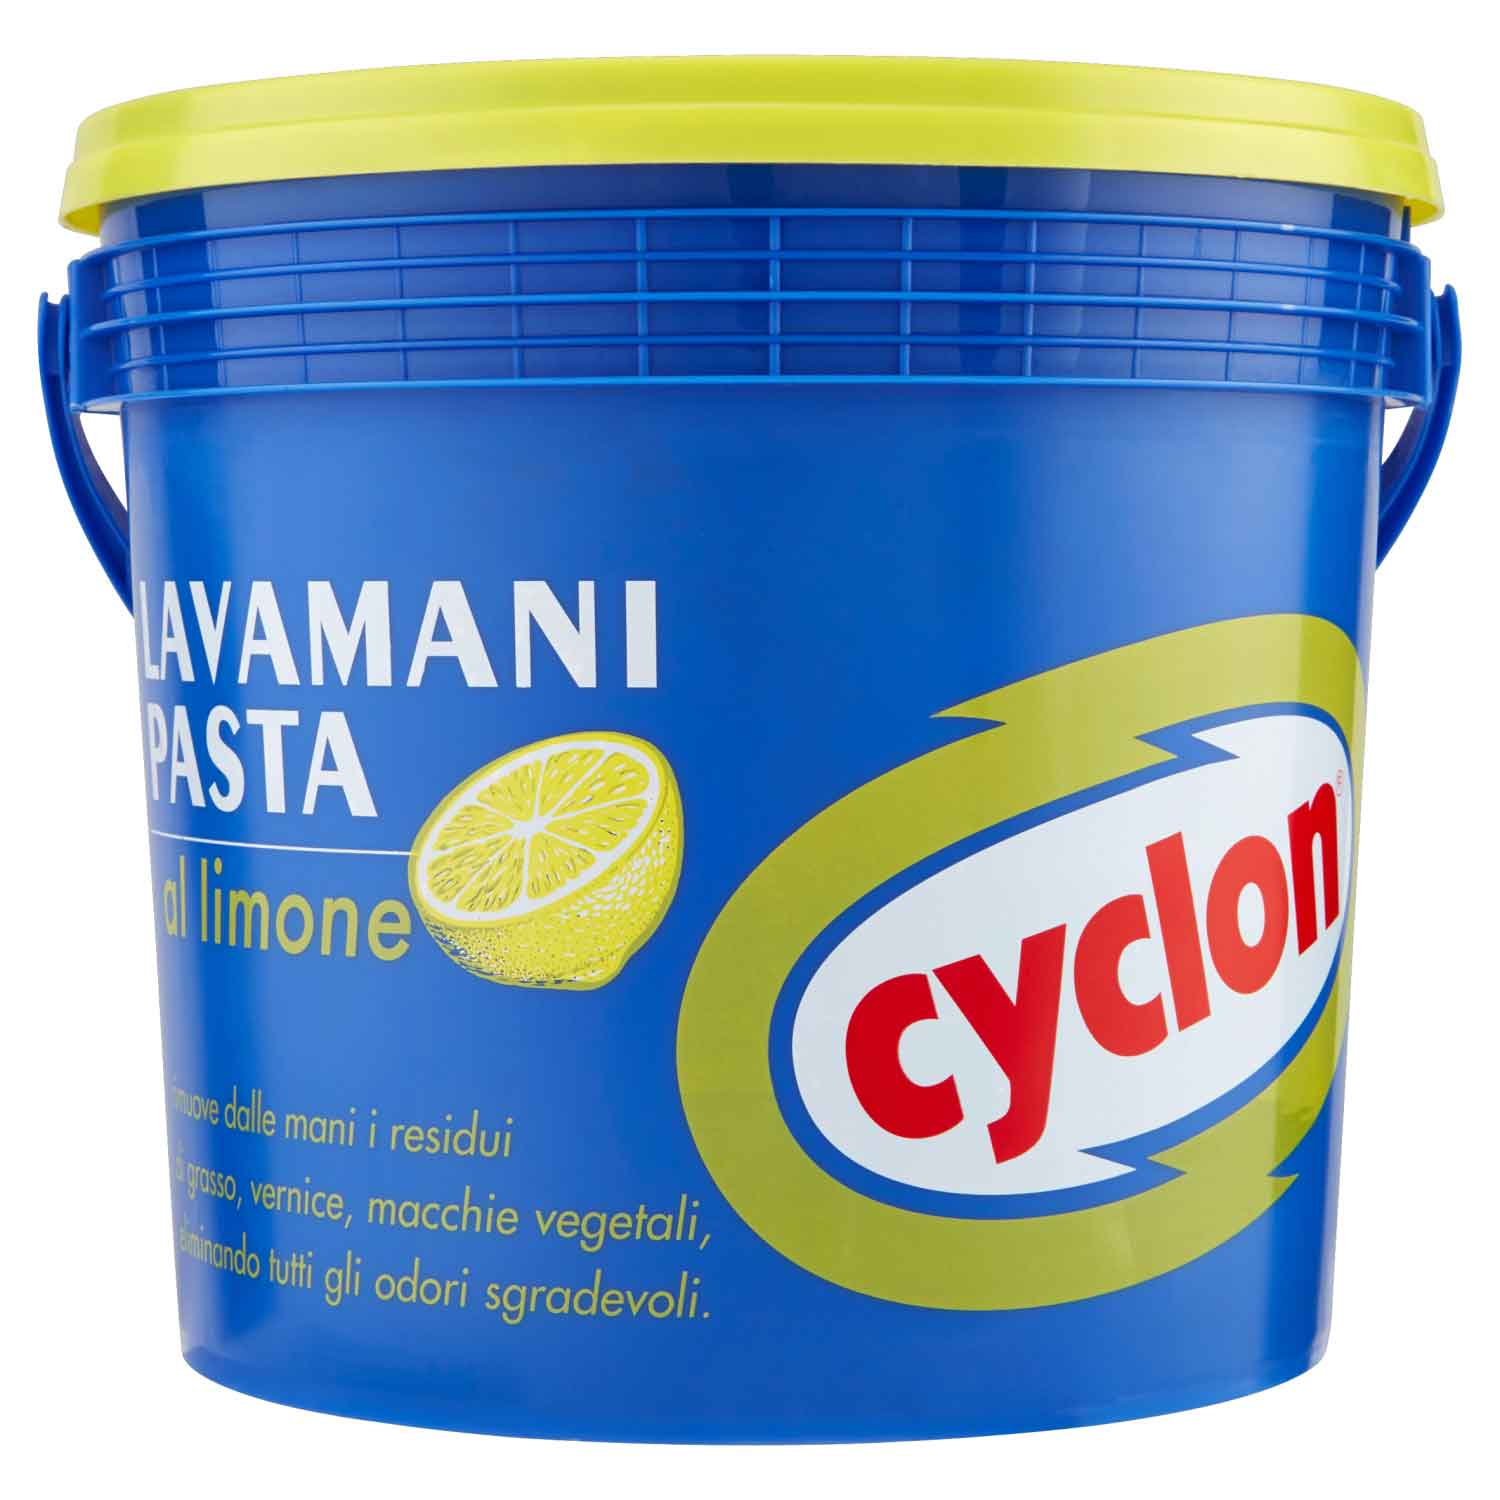 Pasta lavamani CYCLON 5000 ml.